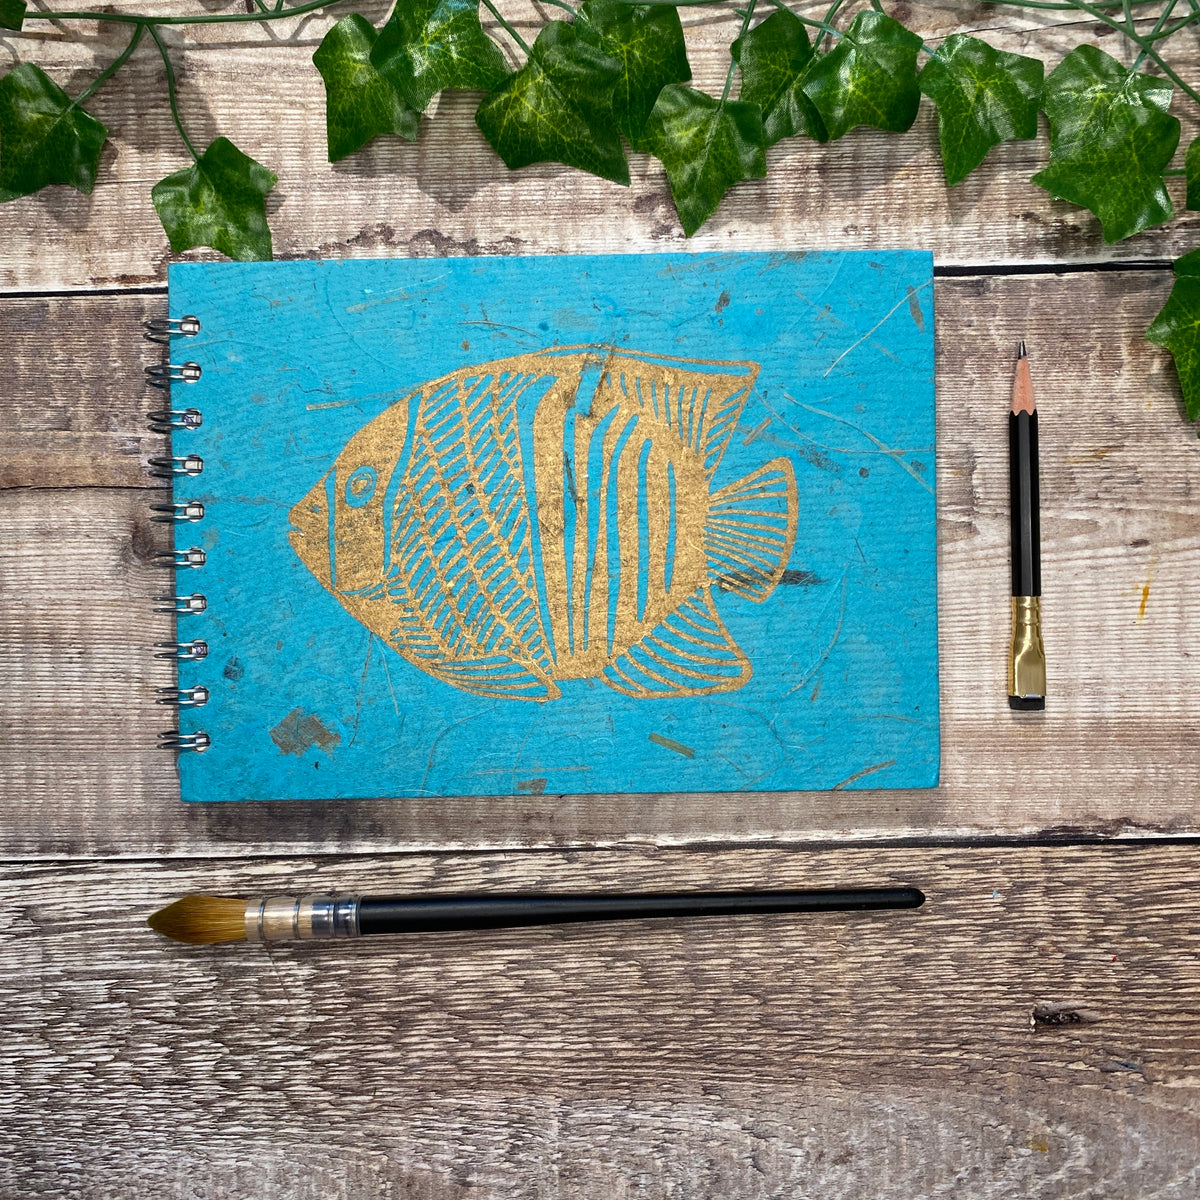 A5 Sky Blue Landscape Watercolour Sketchbook - Gold Fish Linocut